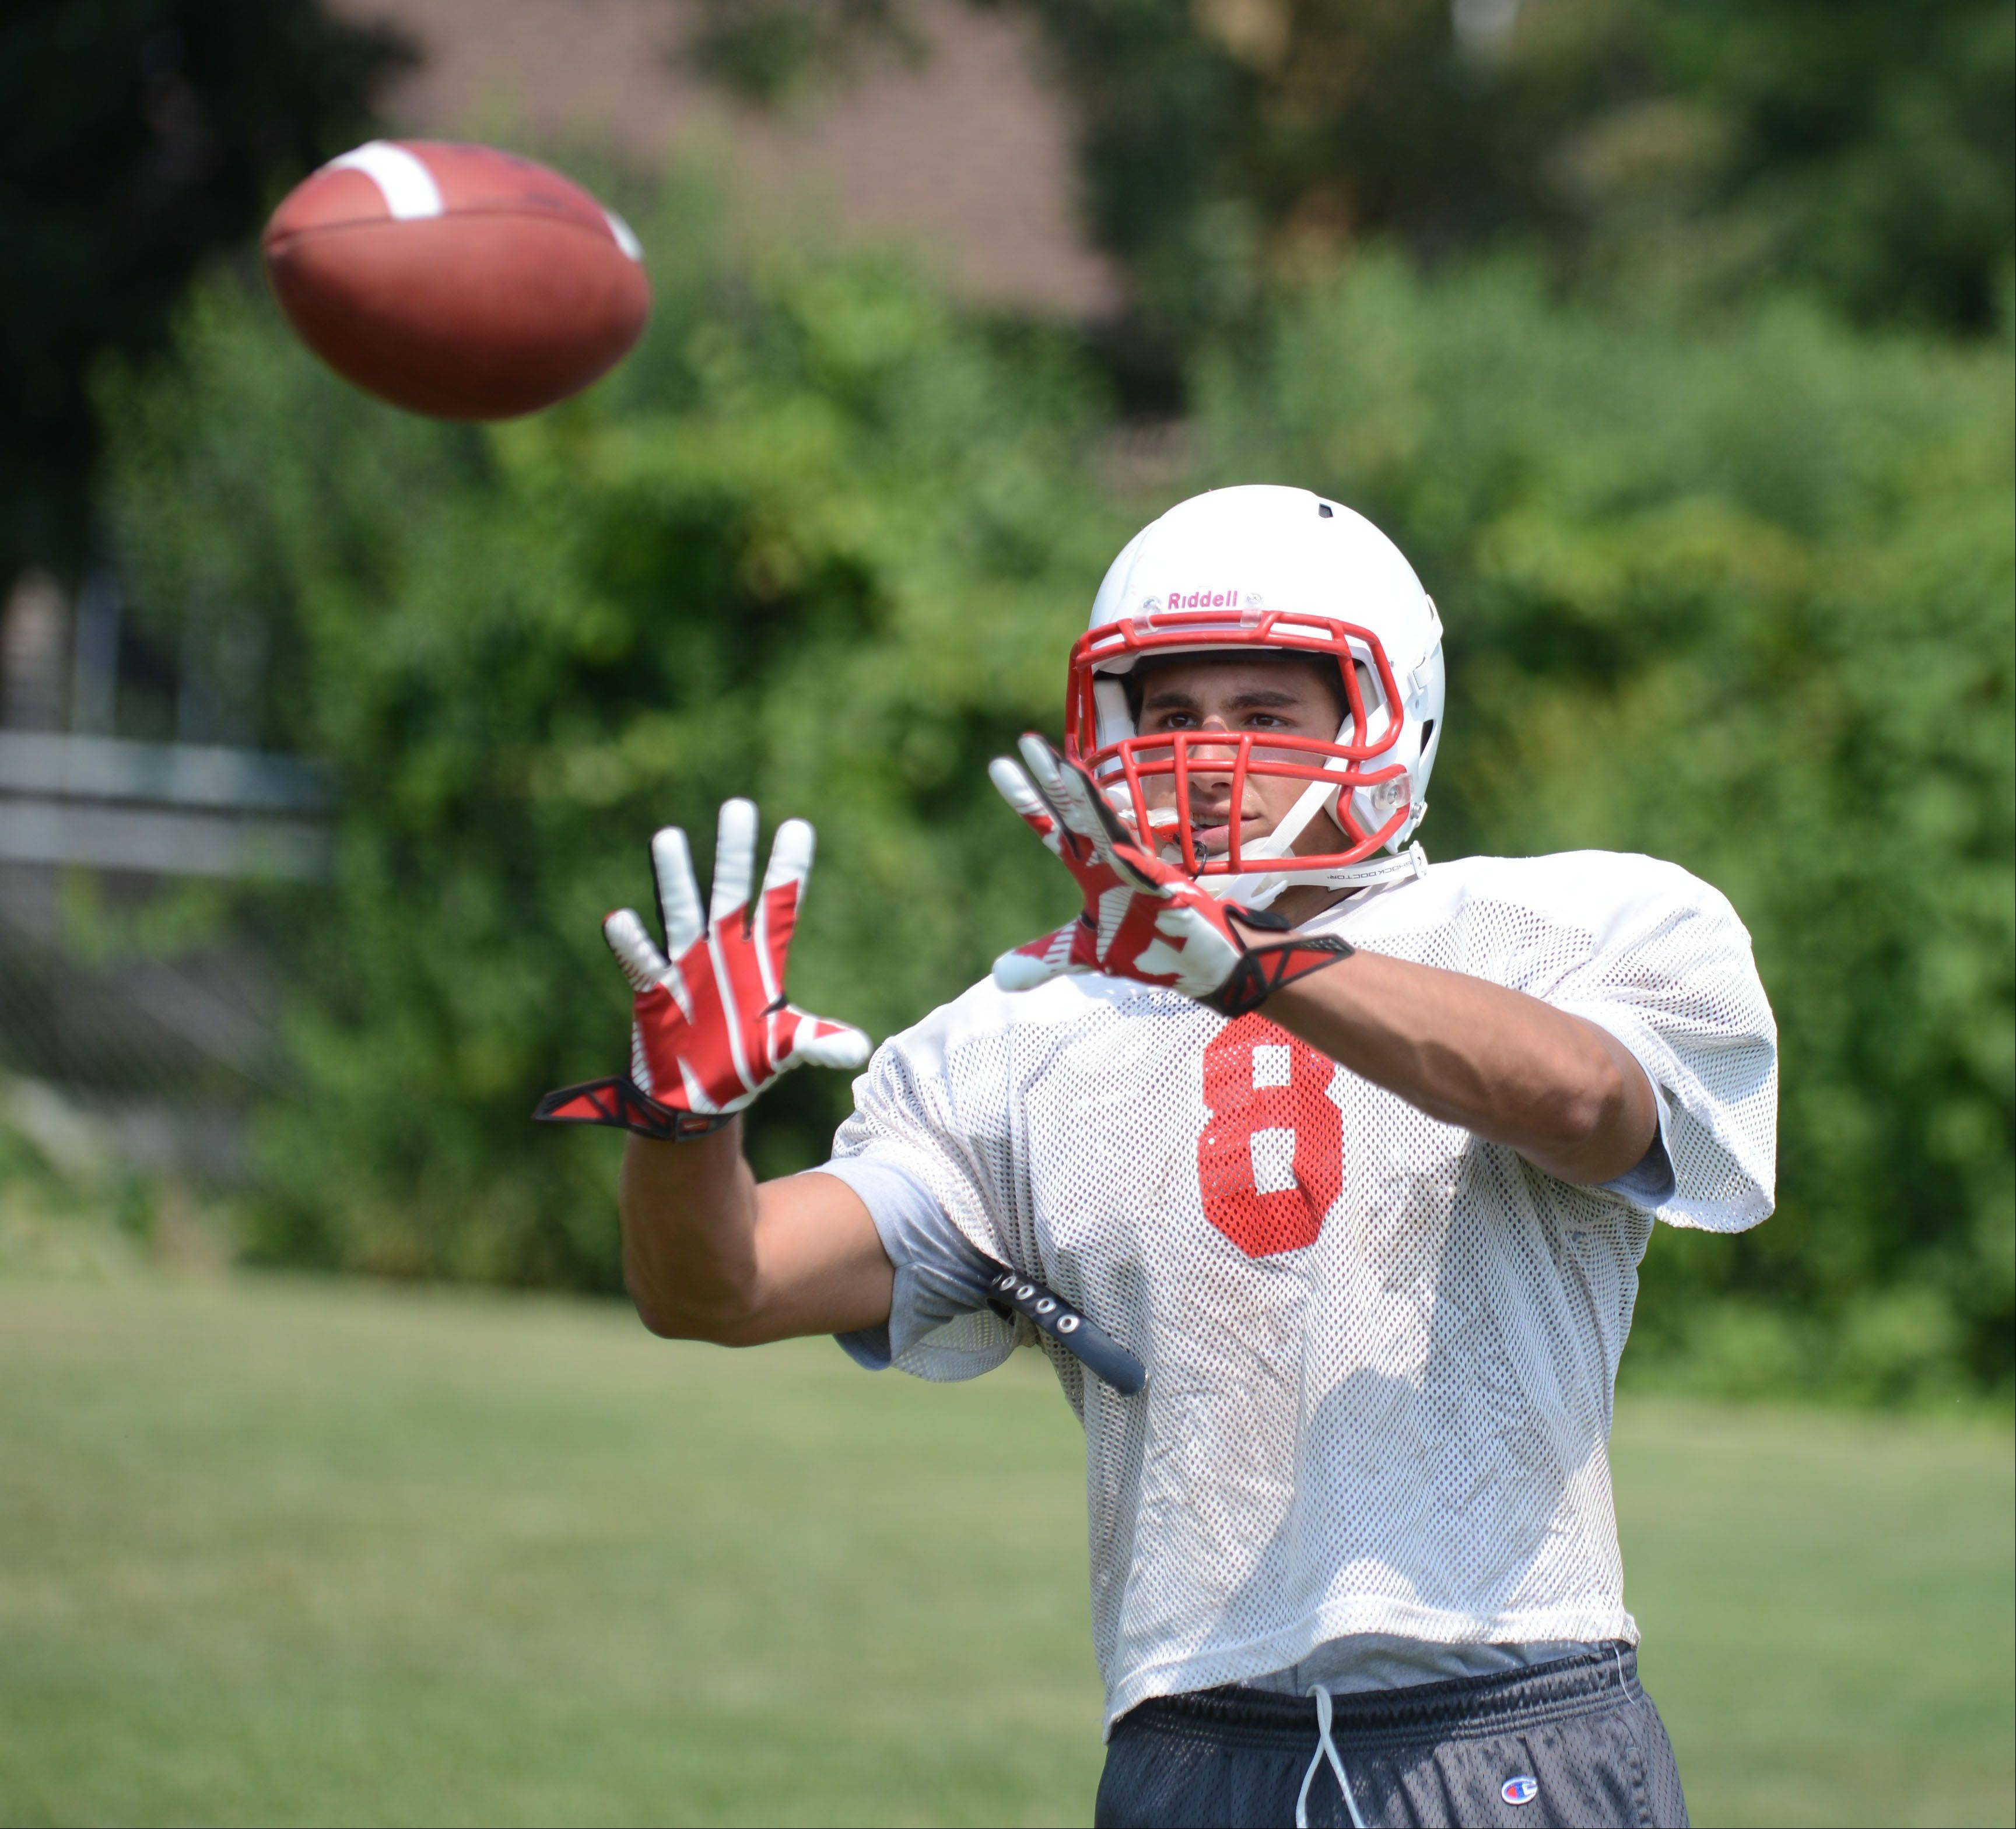 Nick Surges lines up a catch during practice at Benet.